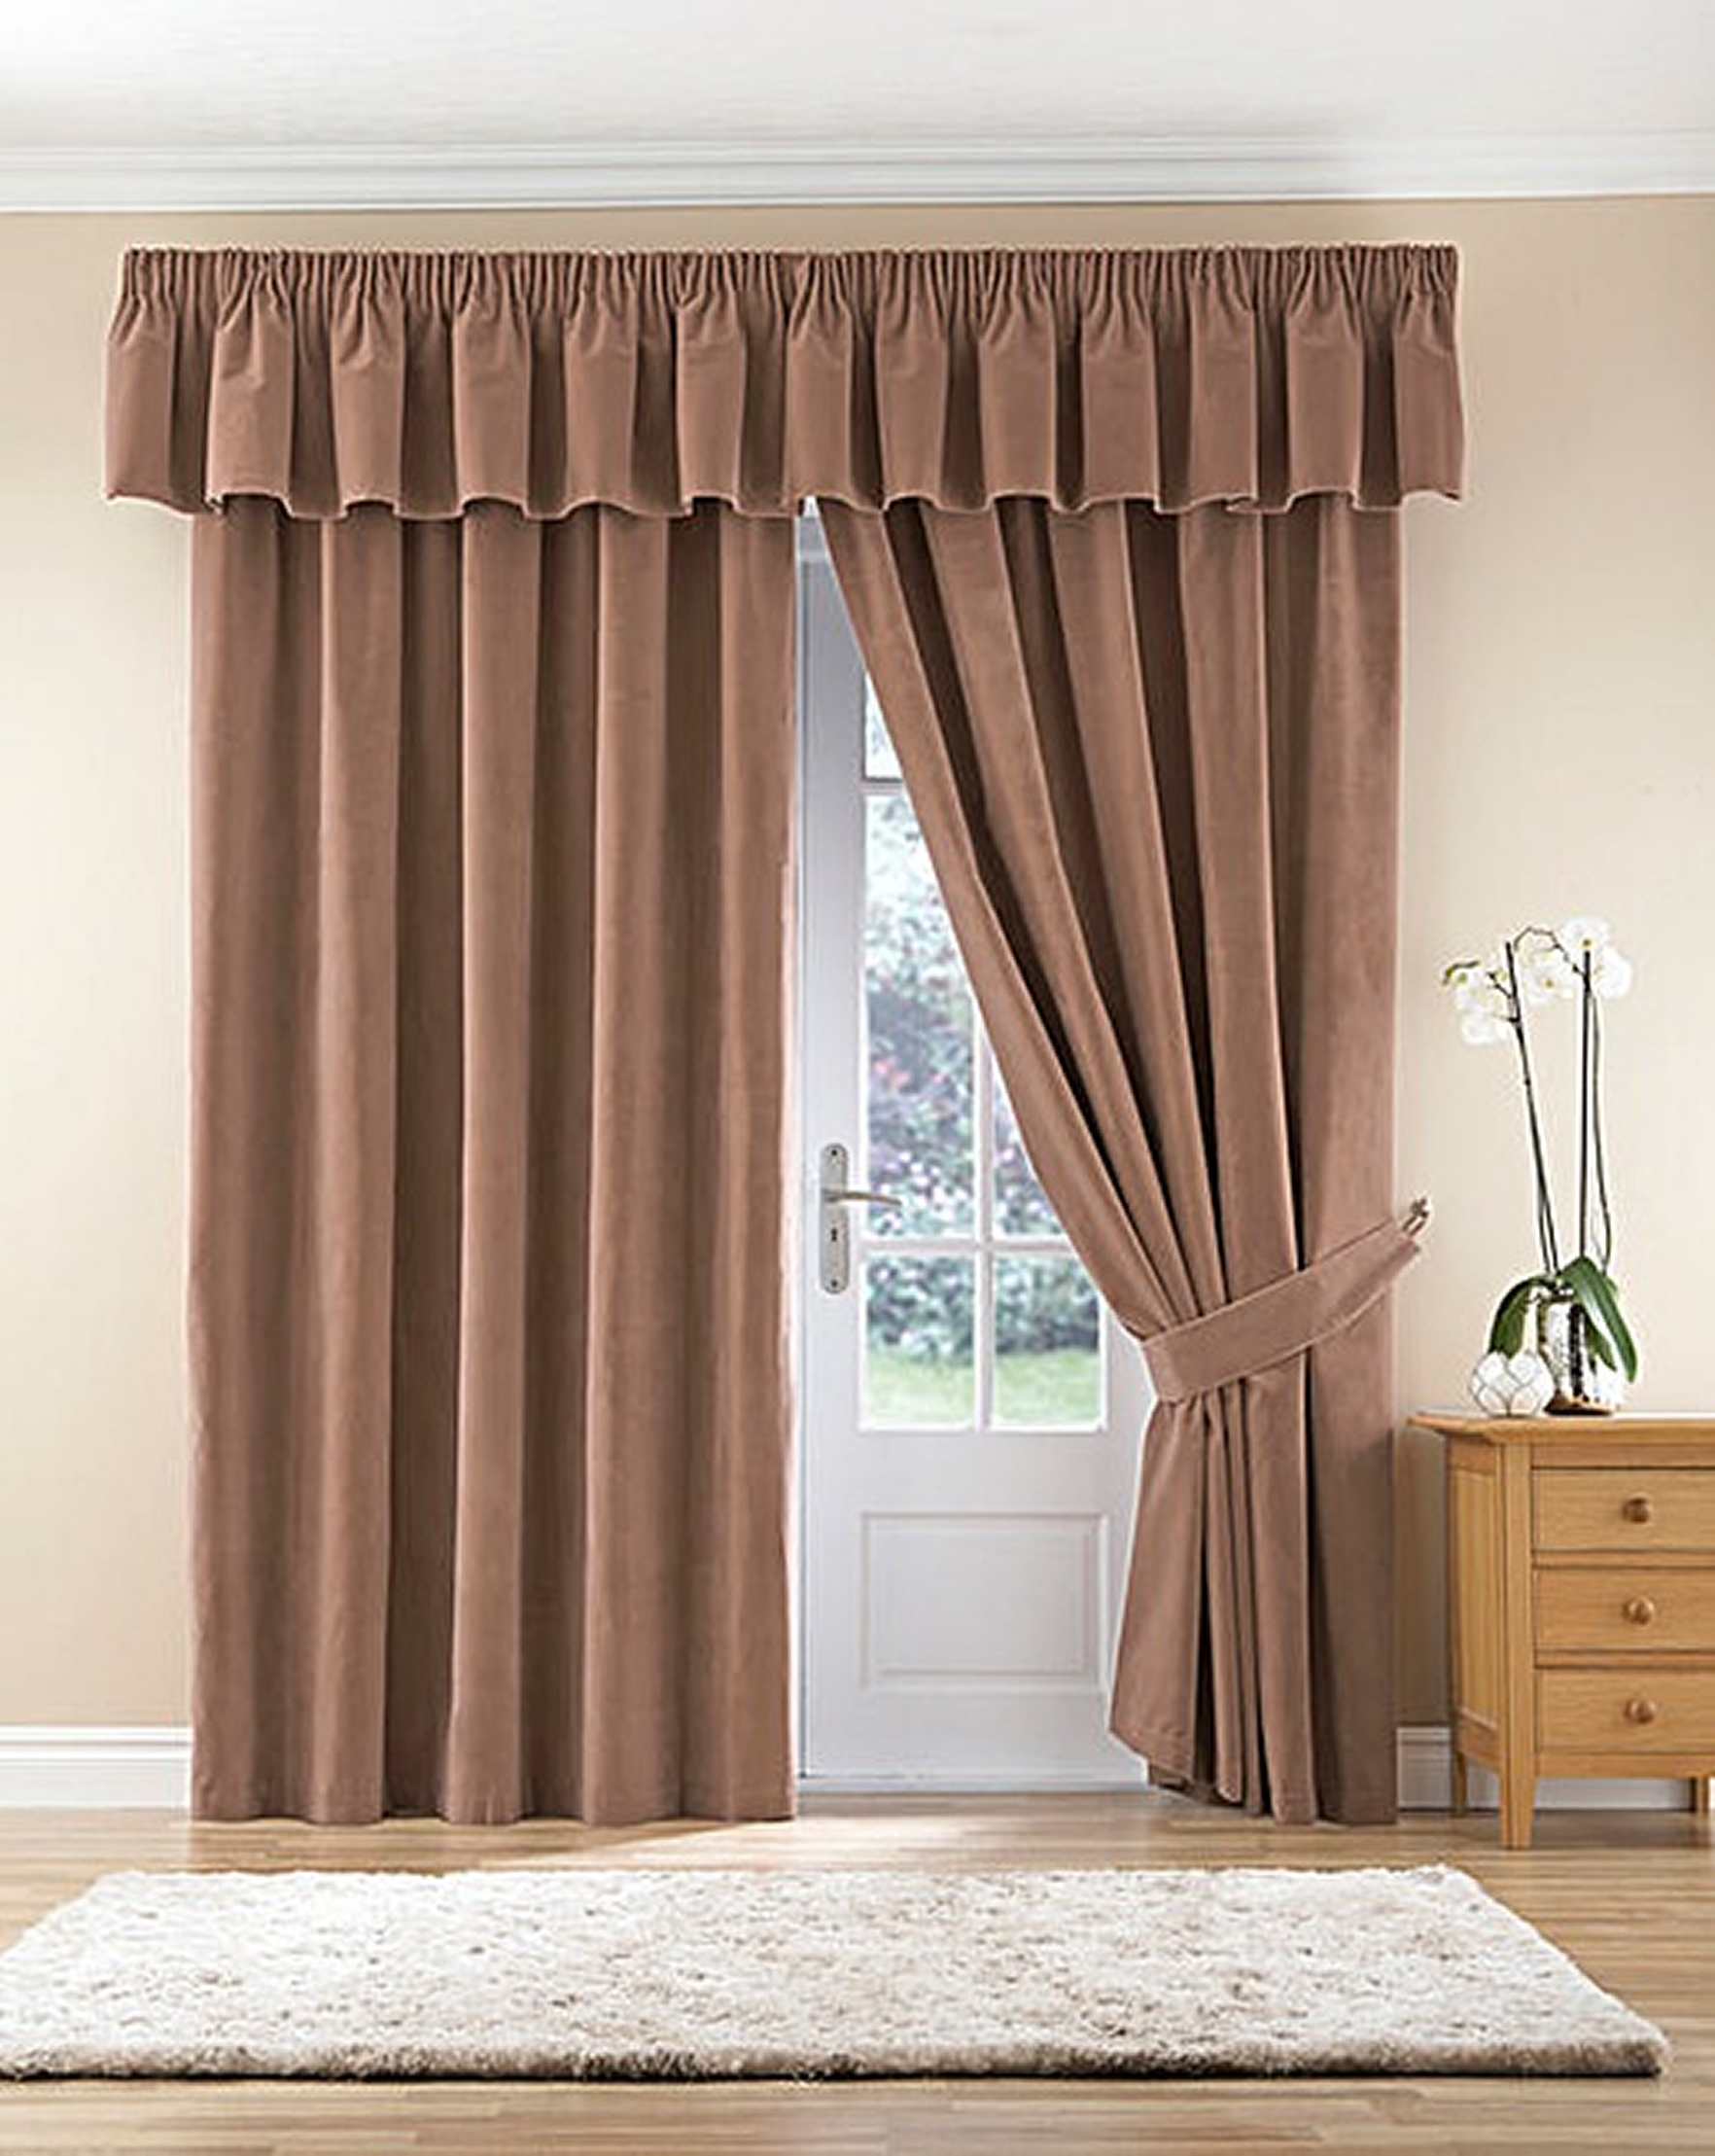 Exceptional Simply Select The Appropriate Curtain Size And Colour From The Drop Down Box